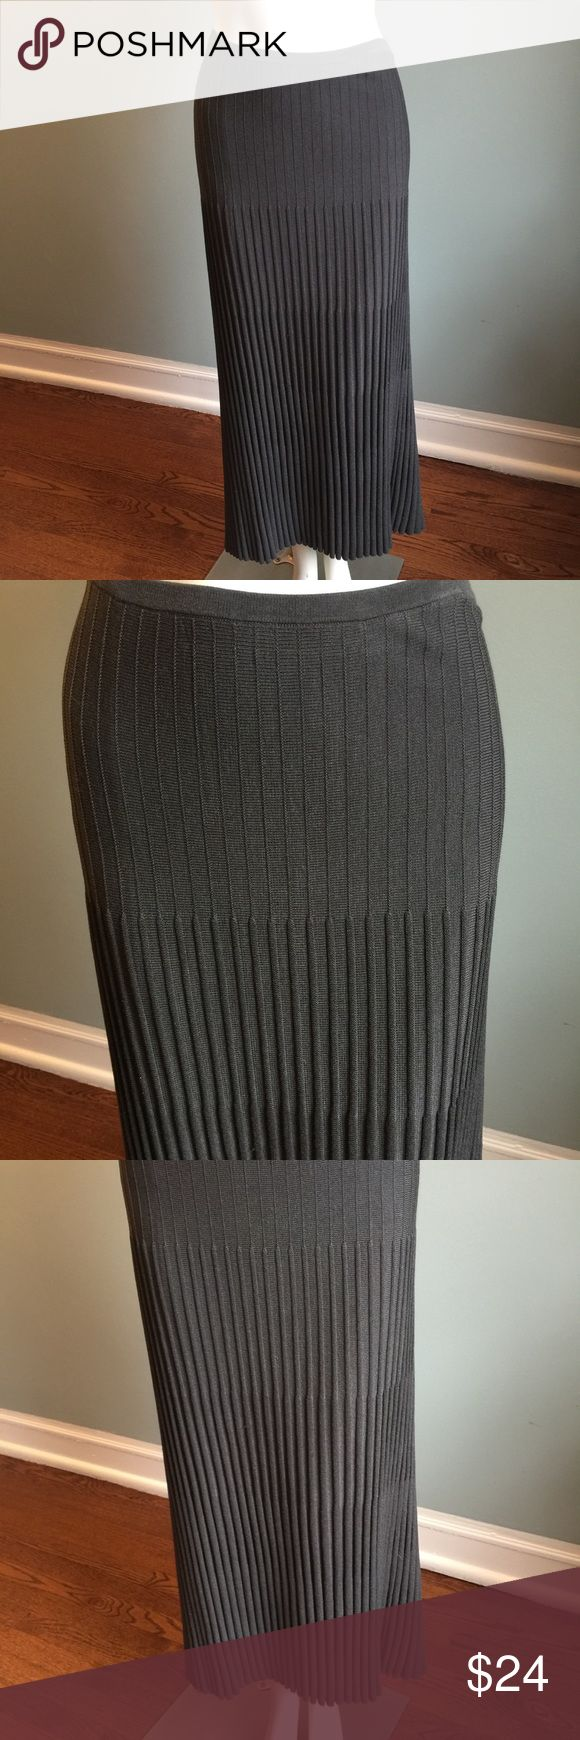 """Nic + Zoe Gray Knit Skirt In good condition, this pleated knit skirt is lined and has elasticized waistband. Shell 100 % silk so has a great feel. Length 37."""" Waist 32"""" but with lots of give because of the elastic band. Hand wash cold. NIC + ZOE Skirts Midi"""